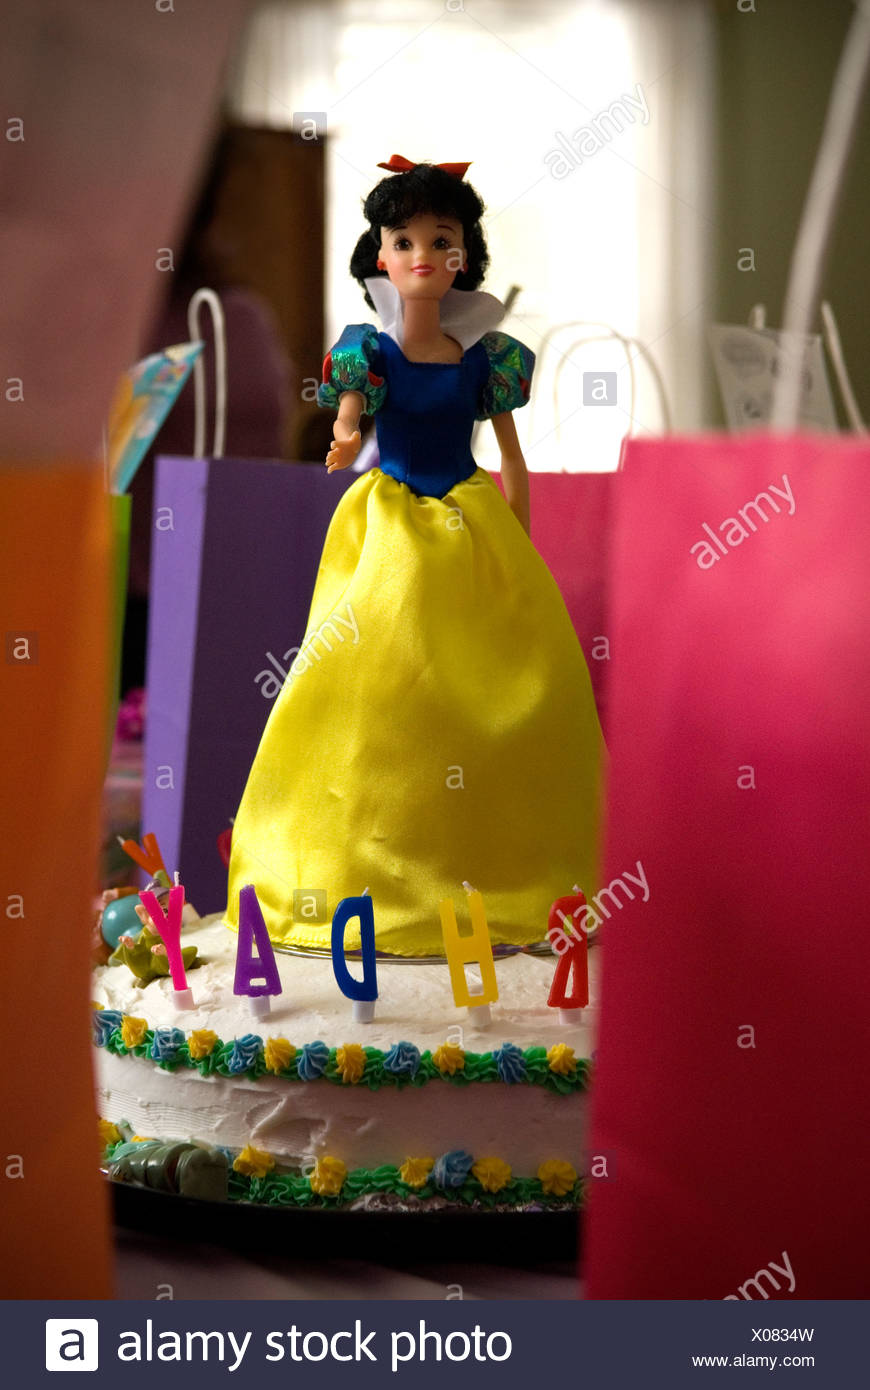 Super Birthday Cake Decorated With Snow White Doll Stock Photo Funny Birthday Cards Online Alyptdamsfinfo